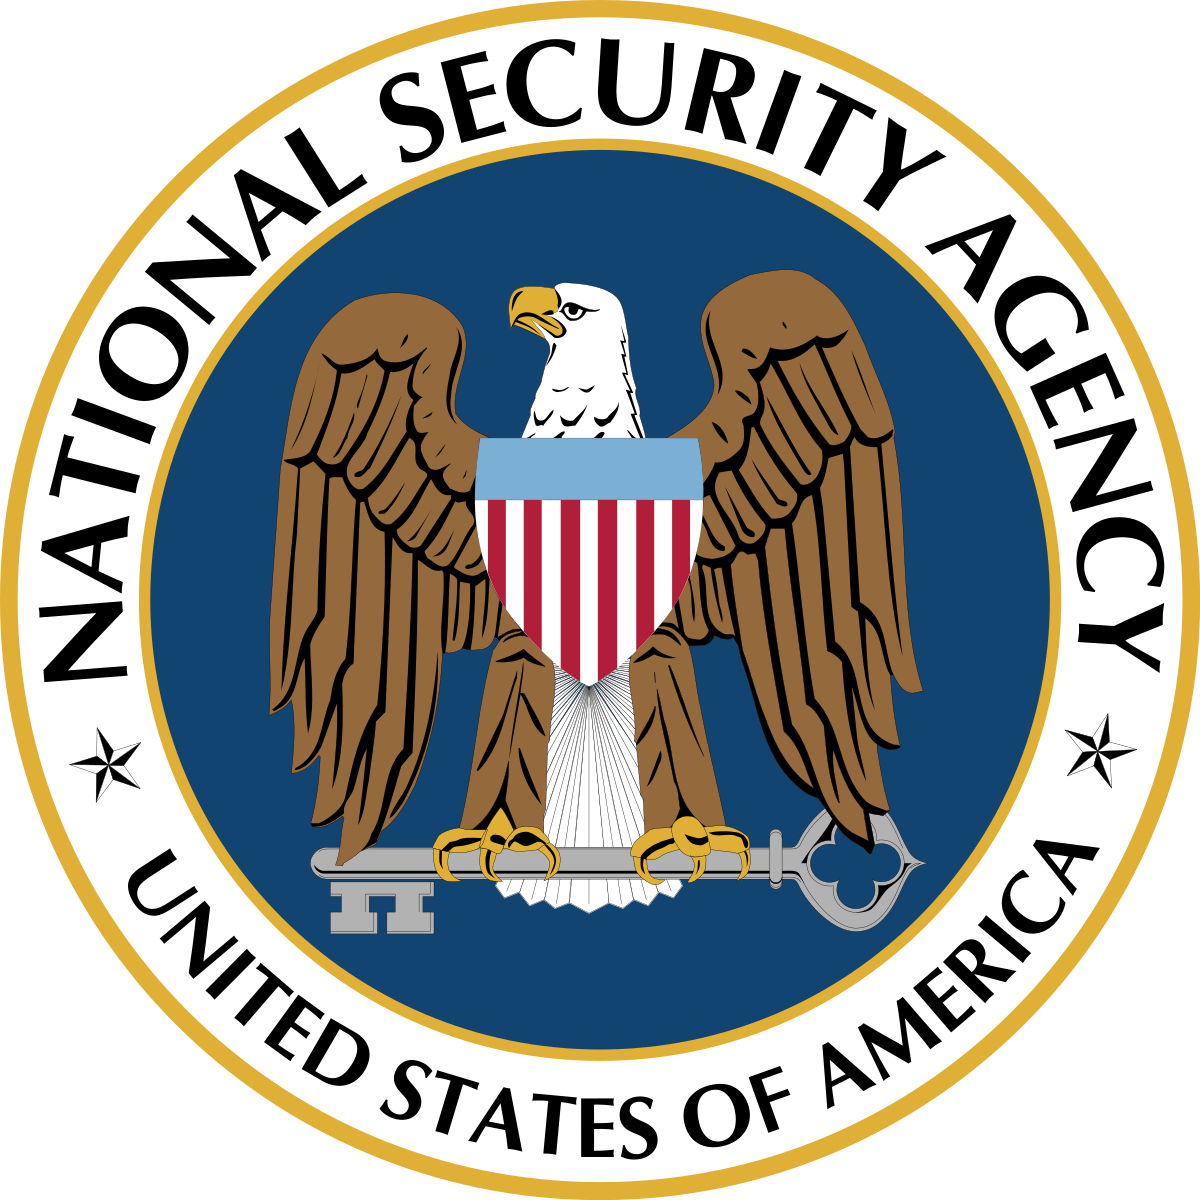 National Security Agency Insignia